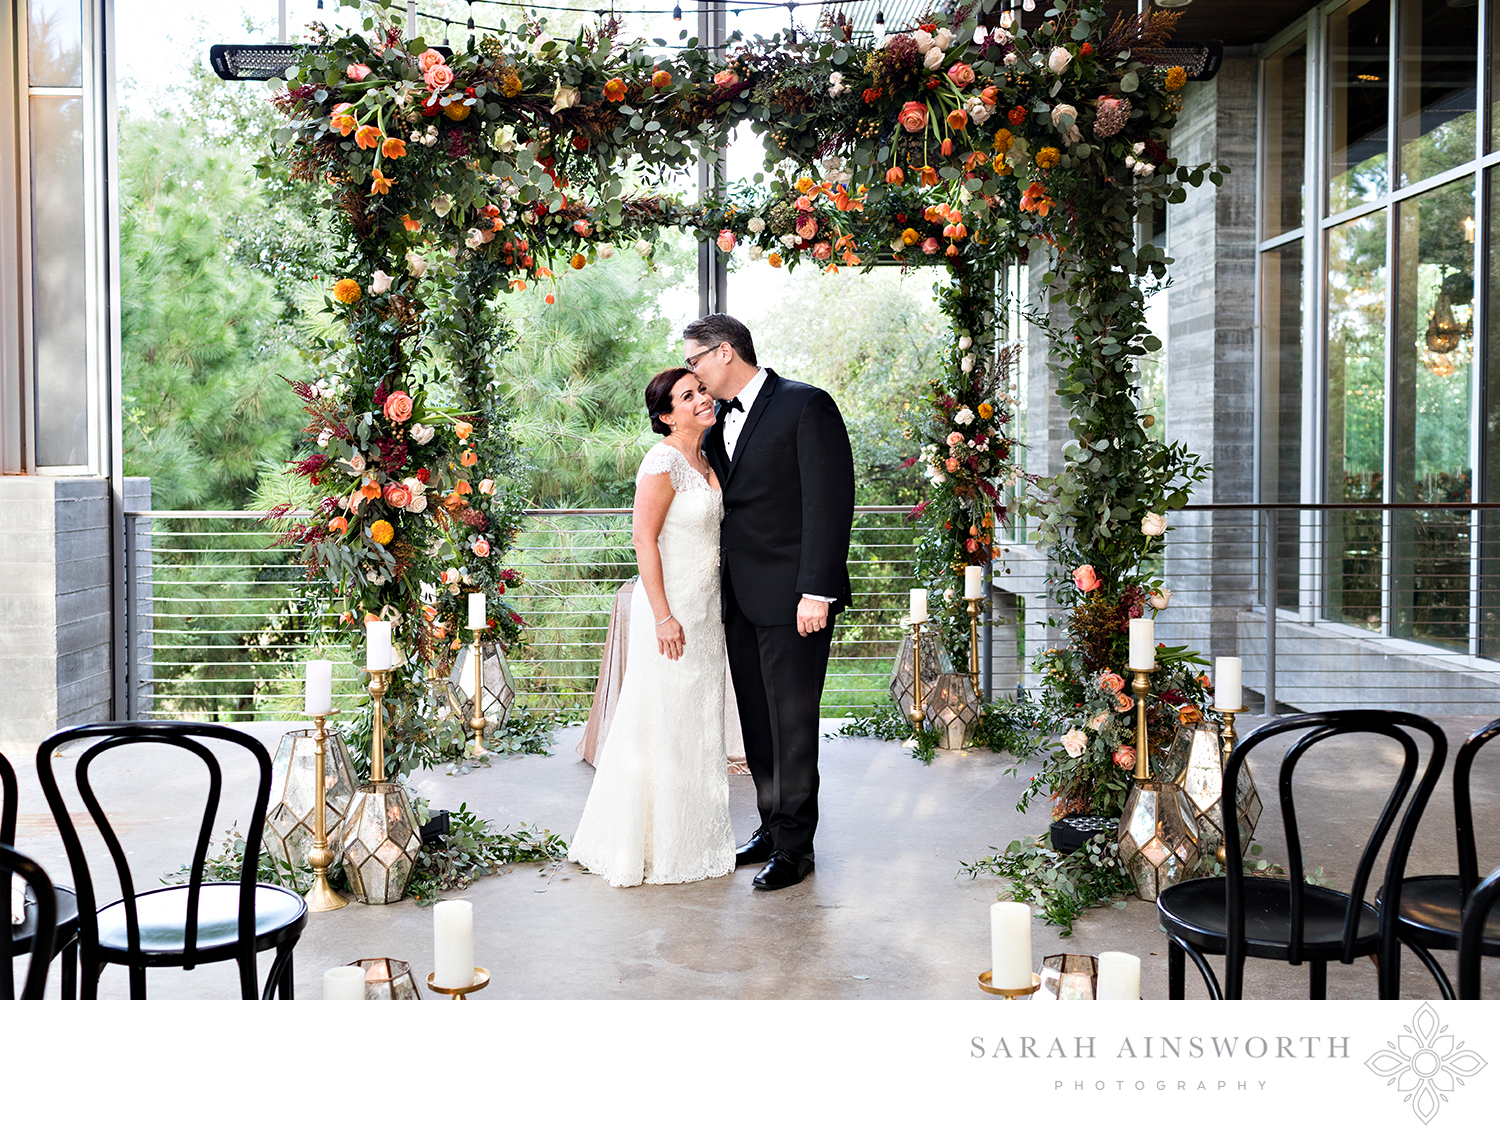 17_the-dunlavy-houston-wedding-houston-wedding-venue-with-chandeliers-houston-restaurants-as-wedding-venues_01.jpg